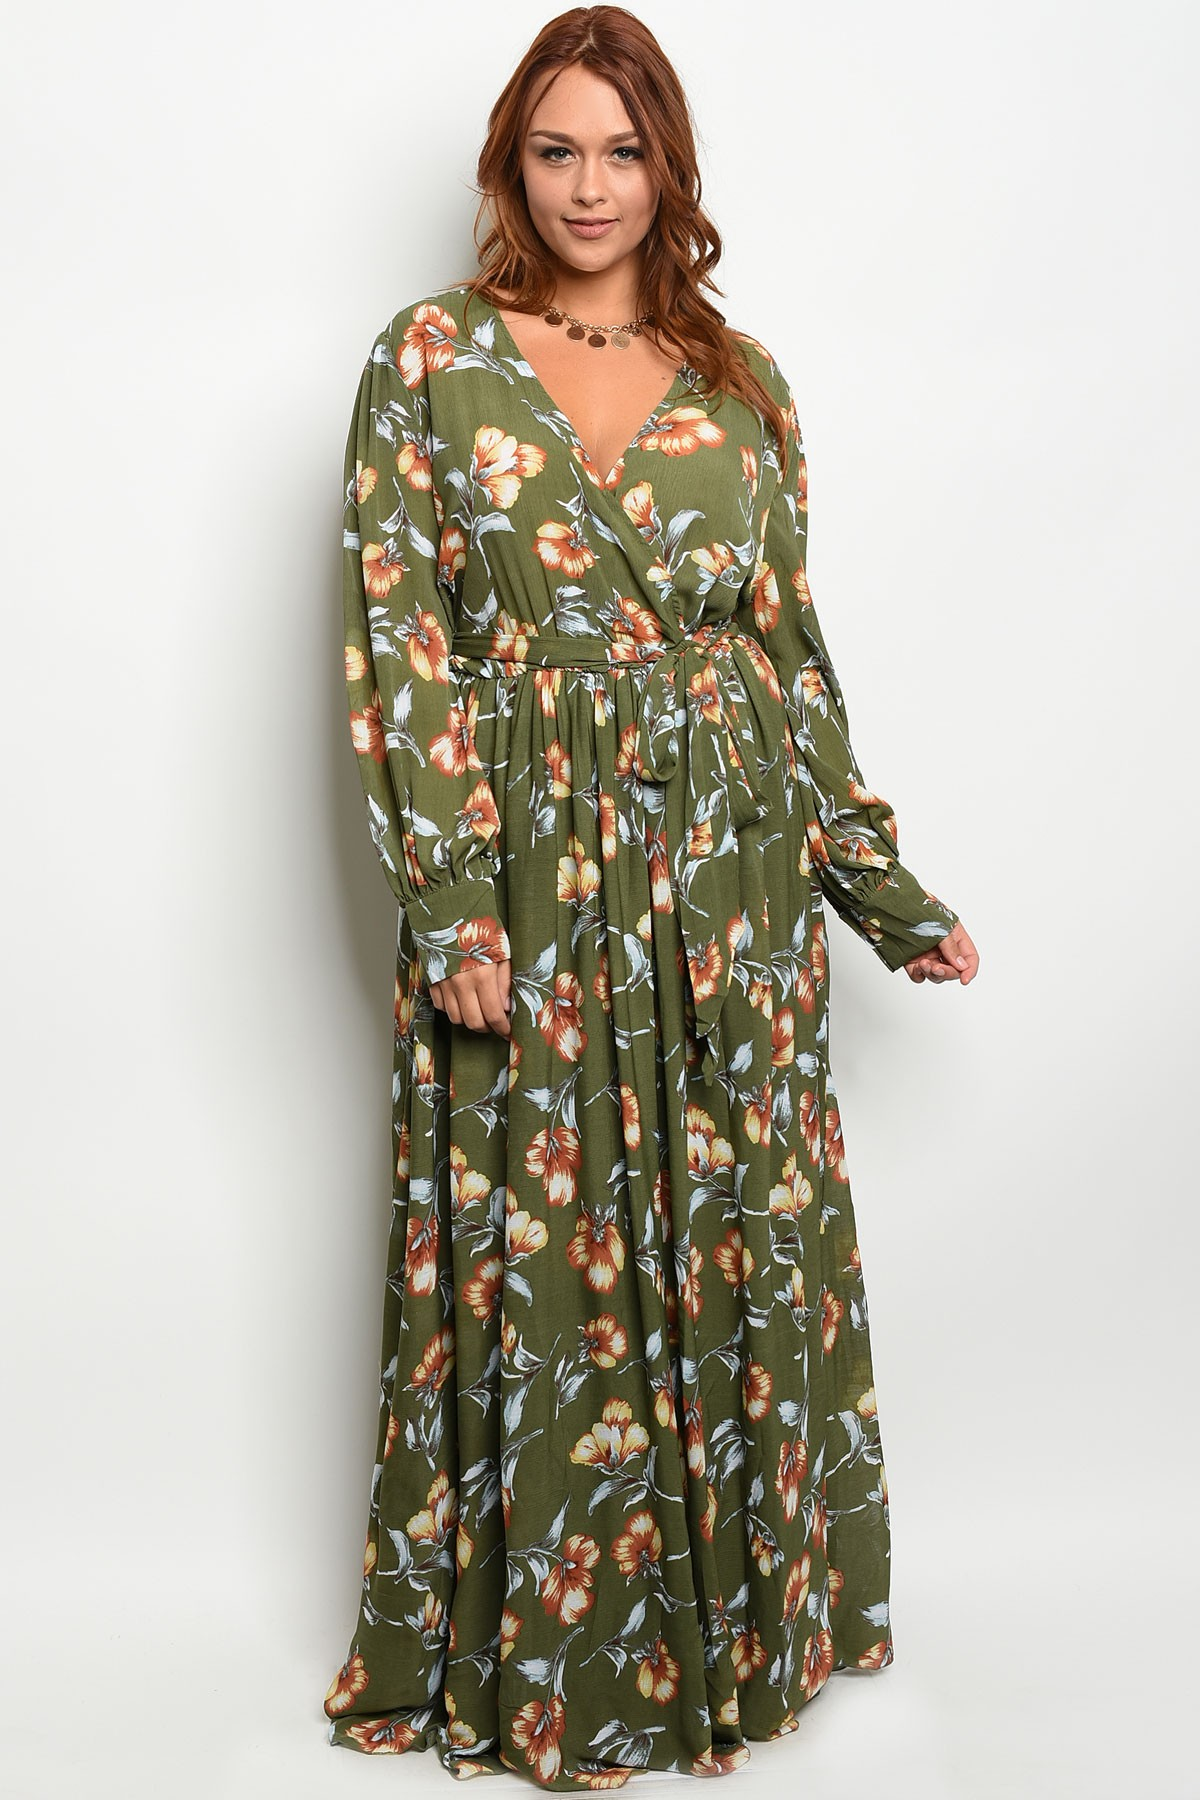 61a6ab94eb5 Floral Chiffon Maxi Dress Plus Size